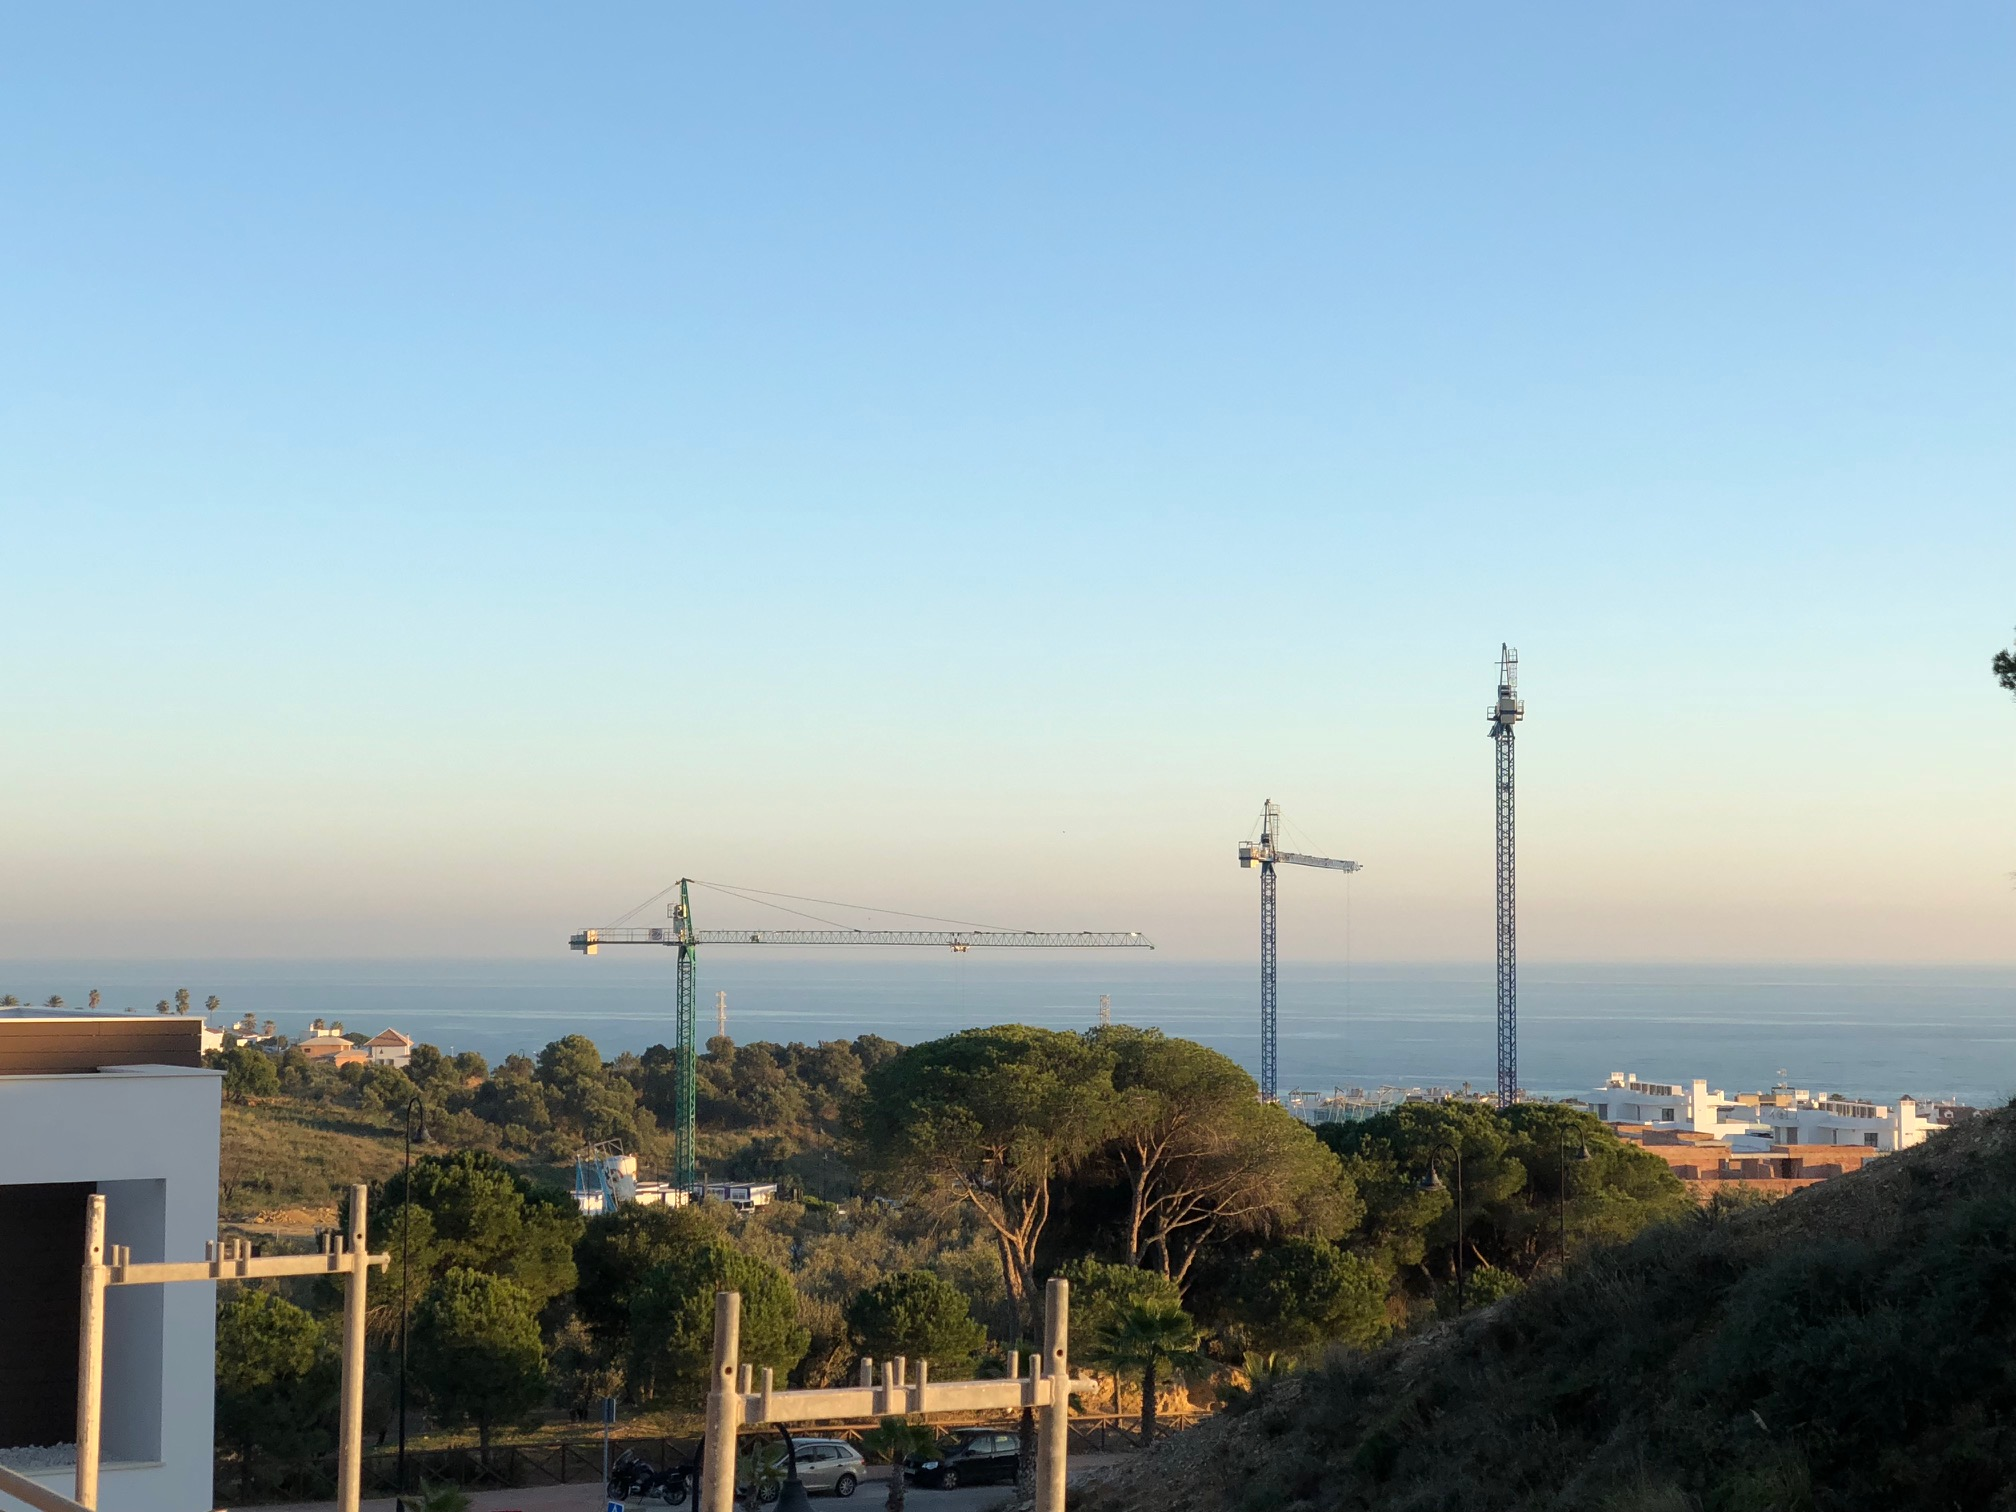 25/01/2018 View from Villa 1 terrace